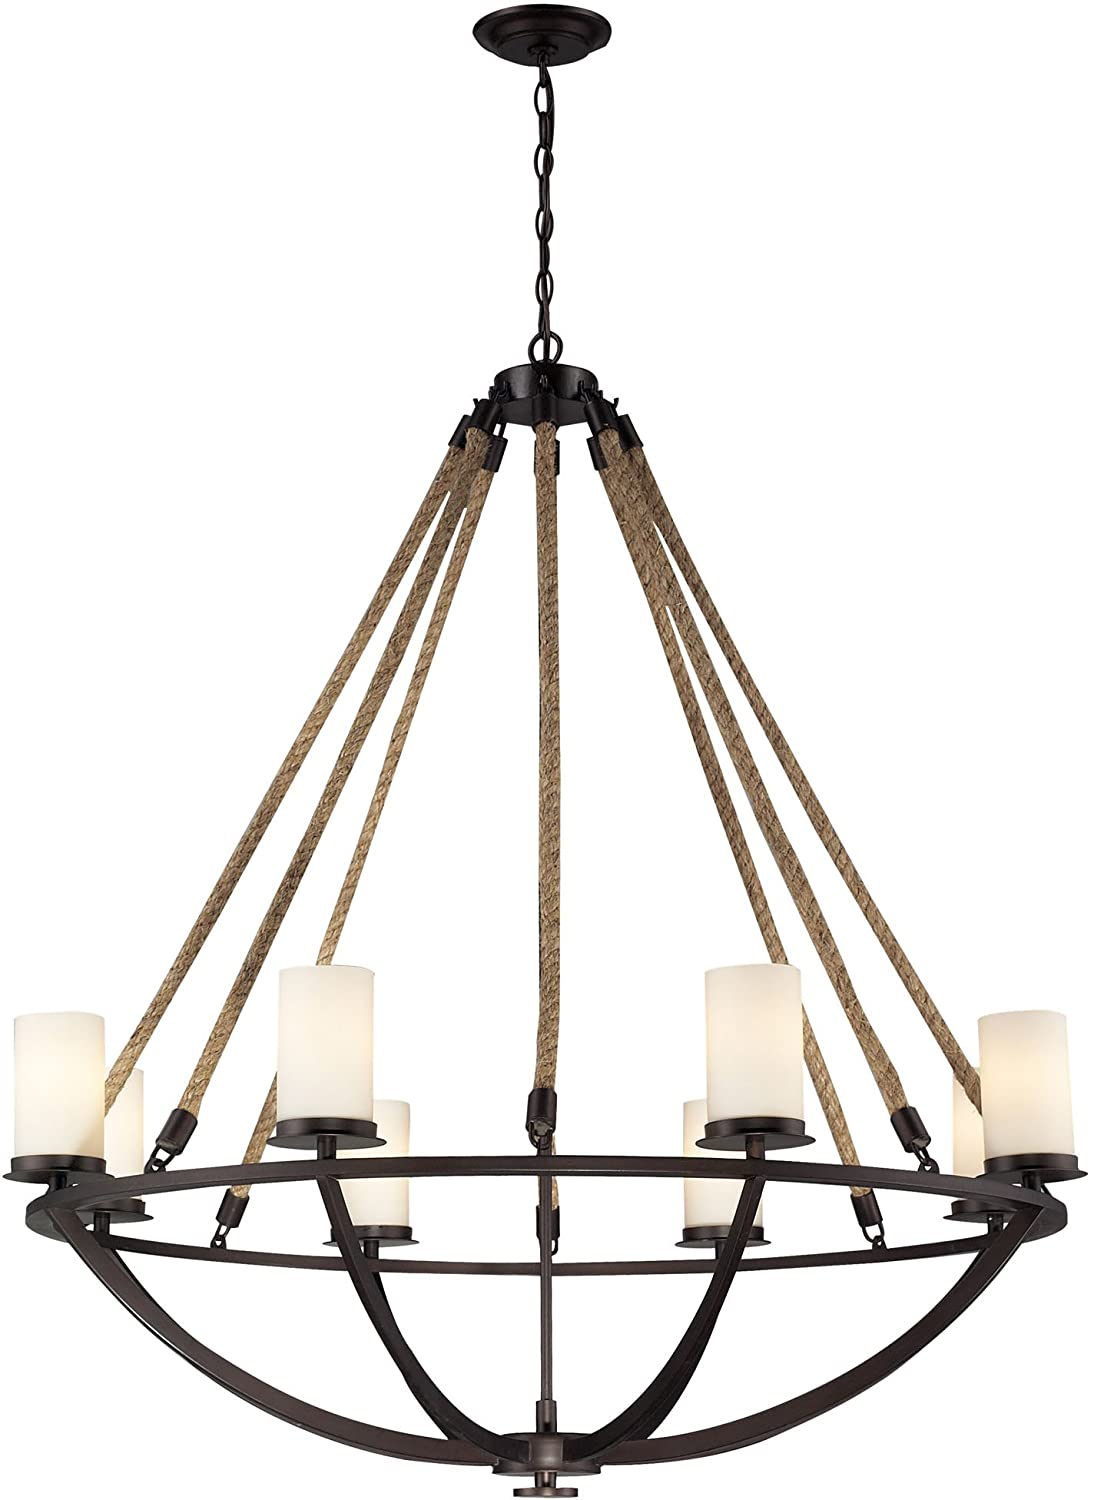 elk natural rope 8light chandelier 41 by 44inch aged bronze finish amazoncom